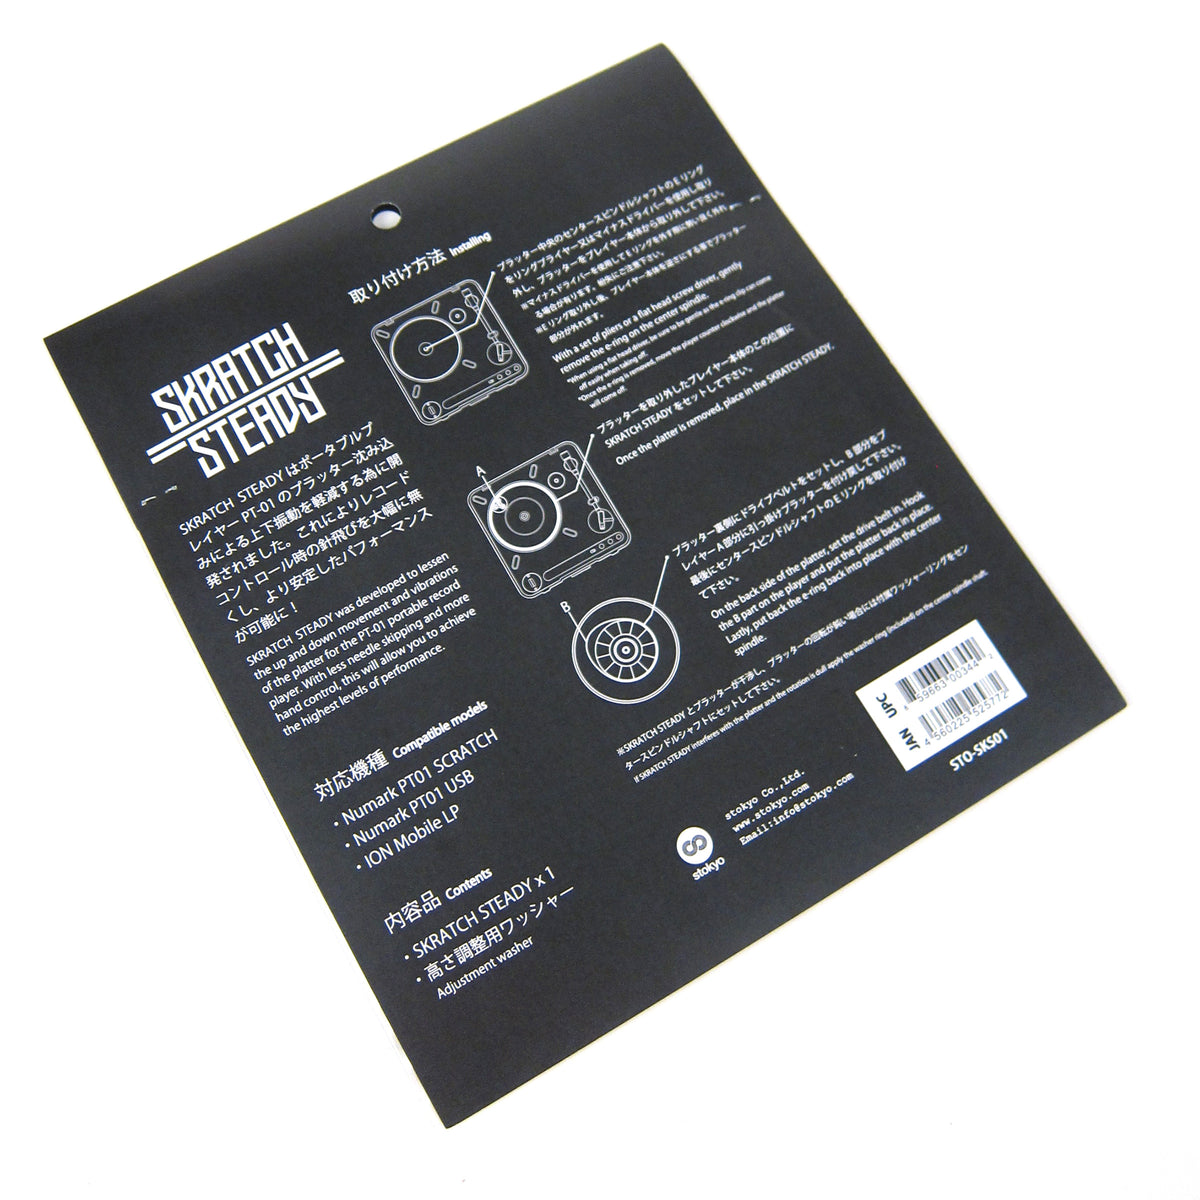 Stokyo: Skratch Steady for Numark PT-01 Turntable